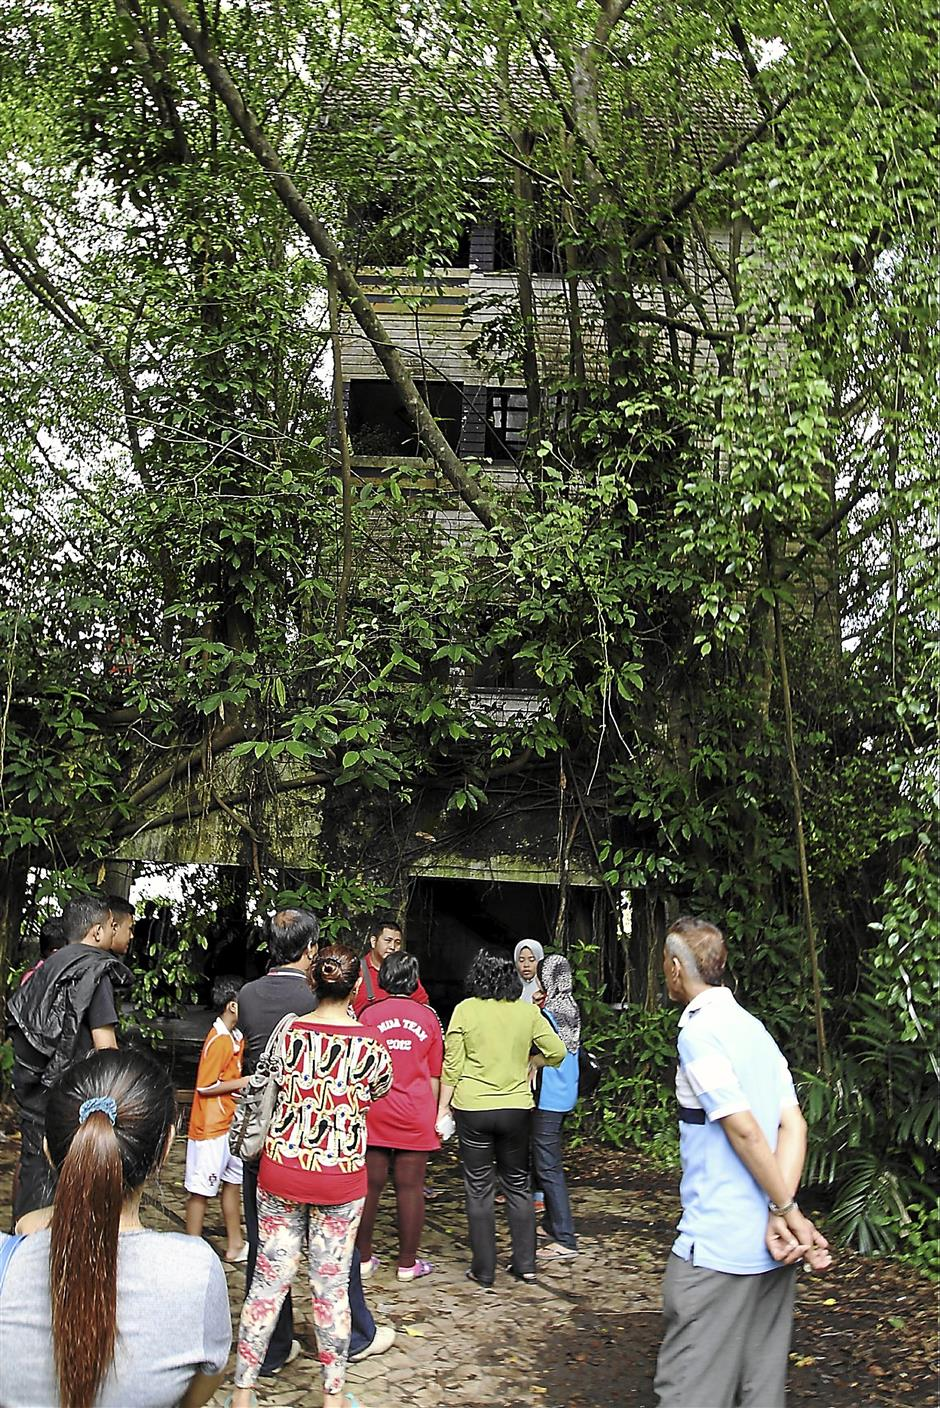 Groups of visitors relating their spooky encounters at Villa Nabila along Jalan Straits View here on Nov 19. The abandoned home became the centre of media attention following the disappearance of a 16-year-old boy who was allegedly last seen entering the area.(LIM CHENG KIAT / THE STAR)